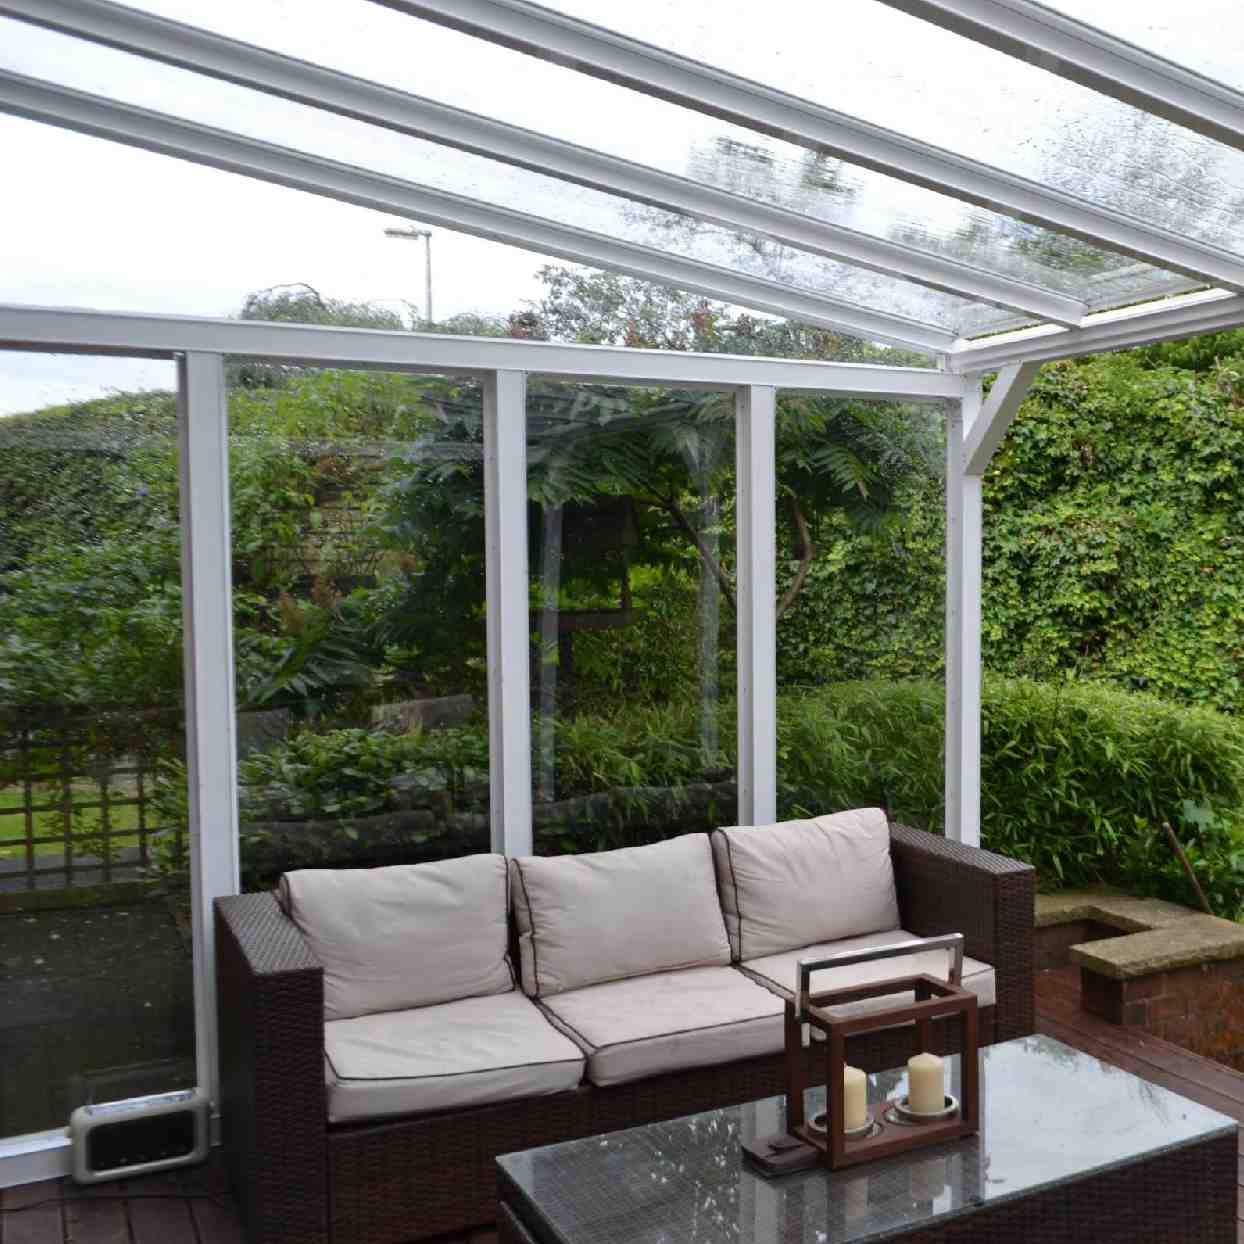 Buy Omega Verandah with 16mm Polycarbonate Glazing - 8.4m (W) x 2.0m (P), (4) Supporting Posts online today